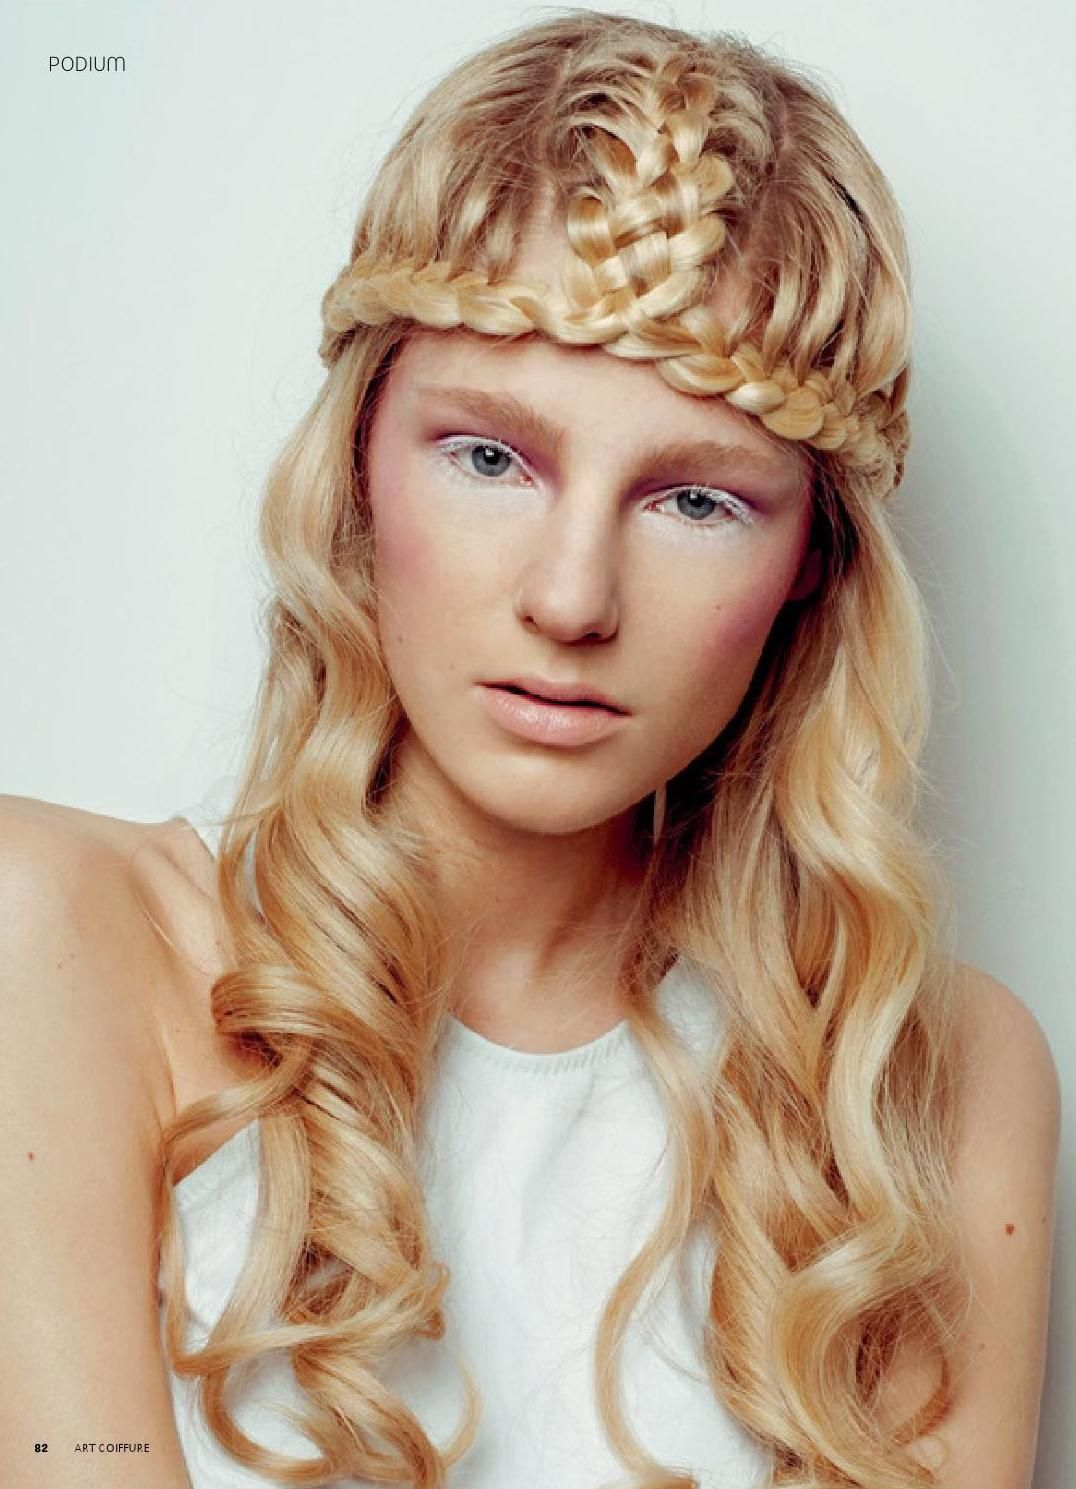 Art Coiffure Russia 8 Blonde Wavy Hair Cool Braid Hairstyles Medieval Hairstyles